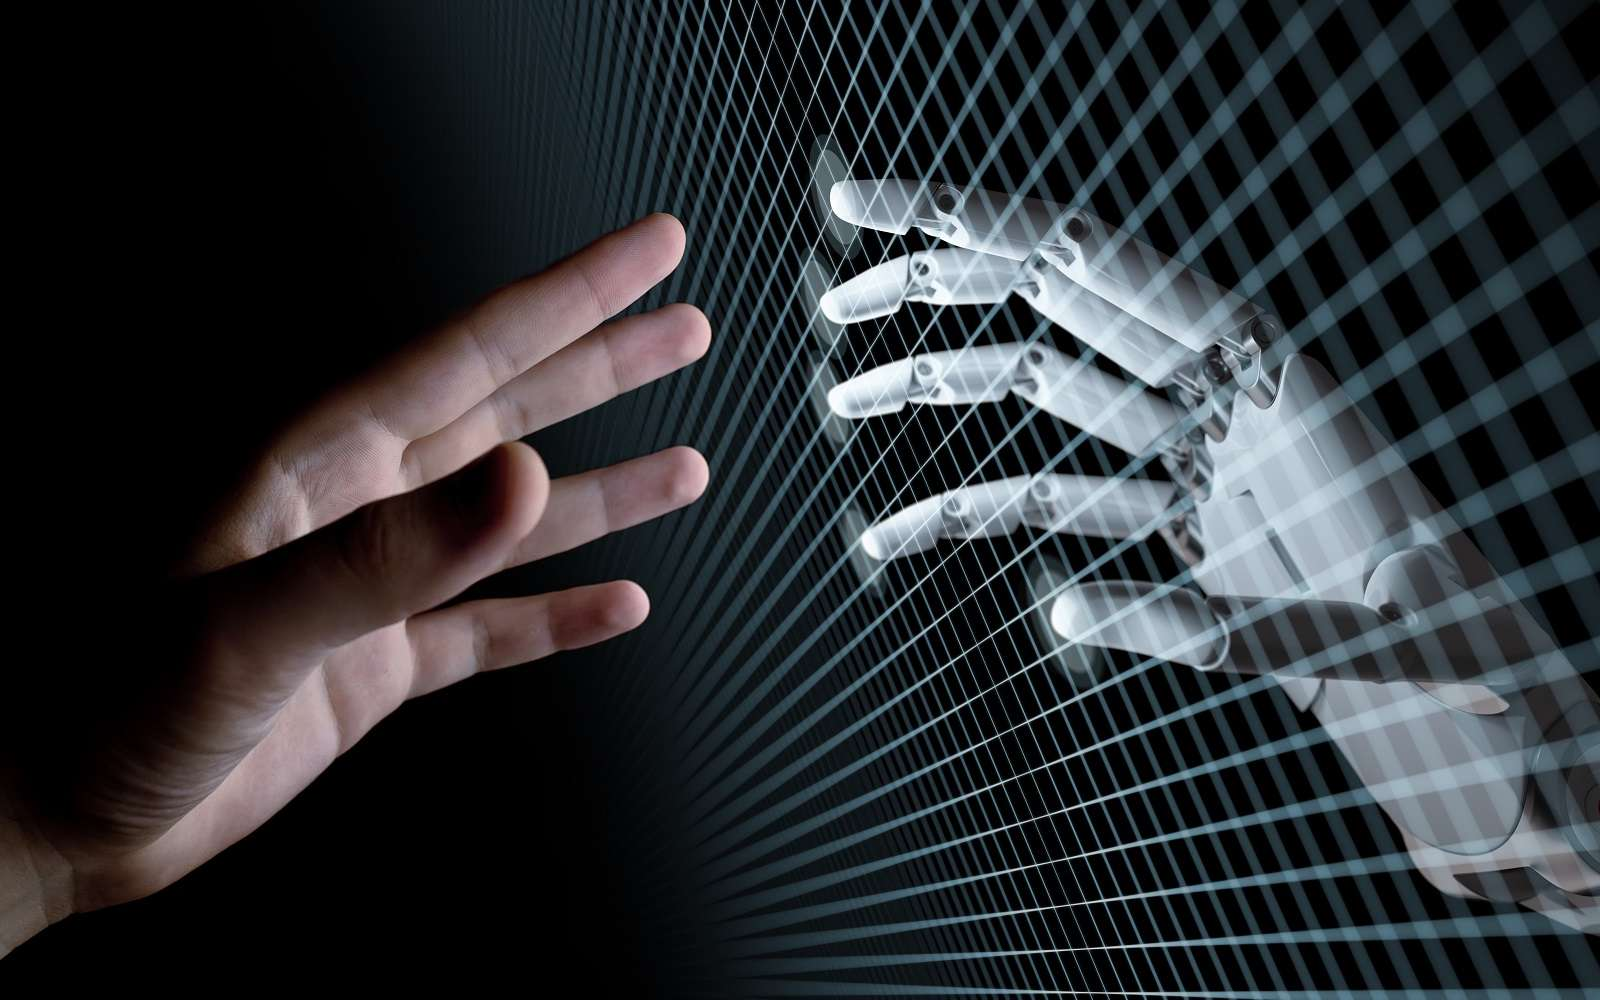 Artificial intelligence surpasses humans to create electronic components